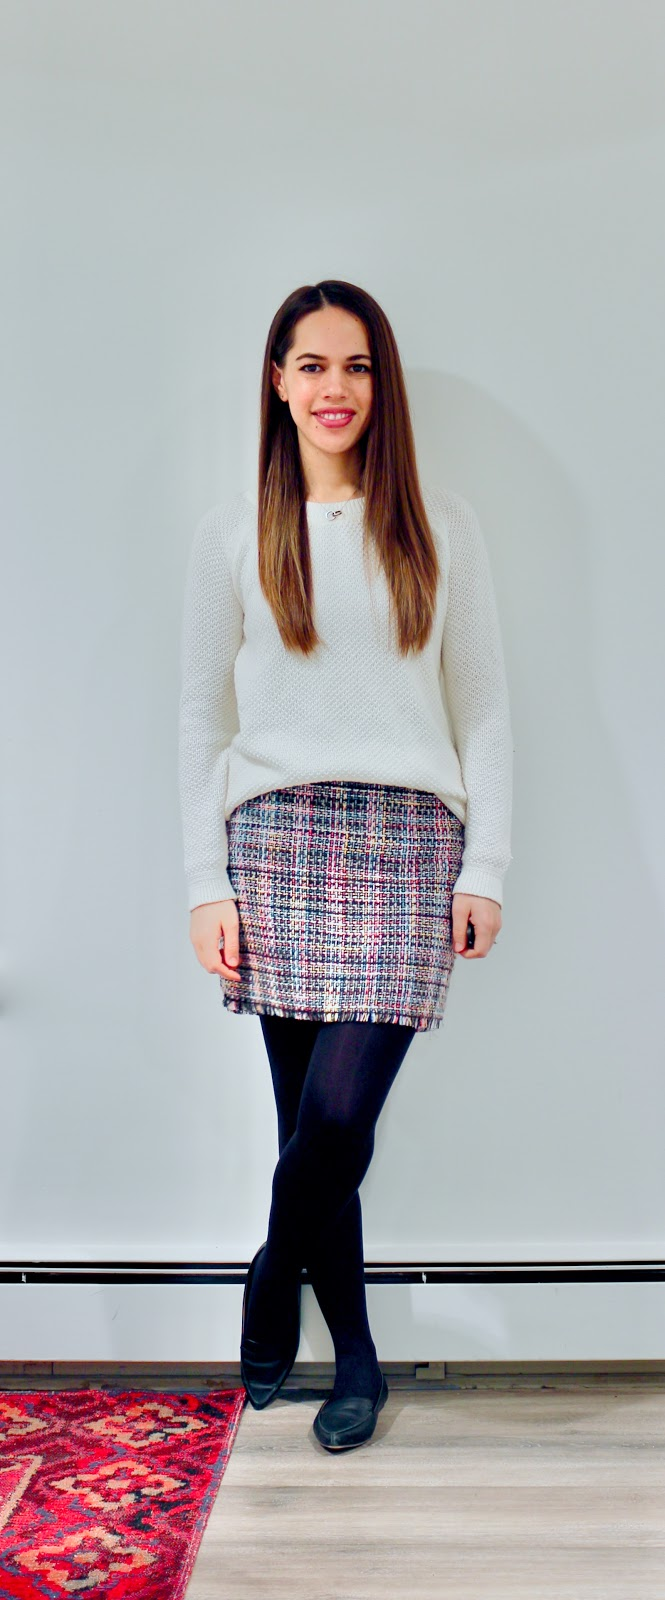 Jules in Flats - Tweed Mini Skirt with Textured Knit Sweater (Business Casual Winter Workwear on a Budget)